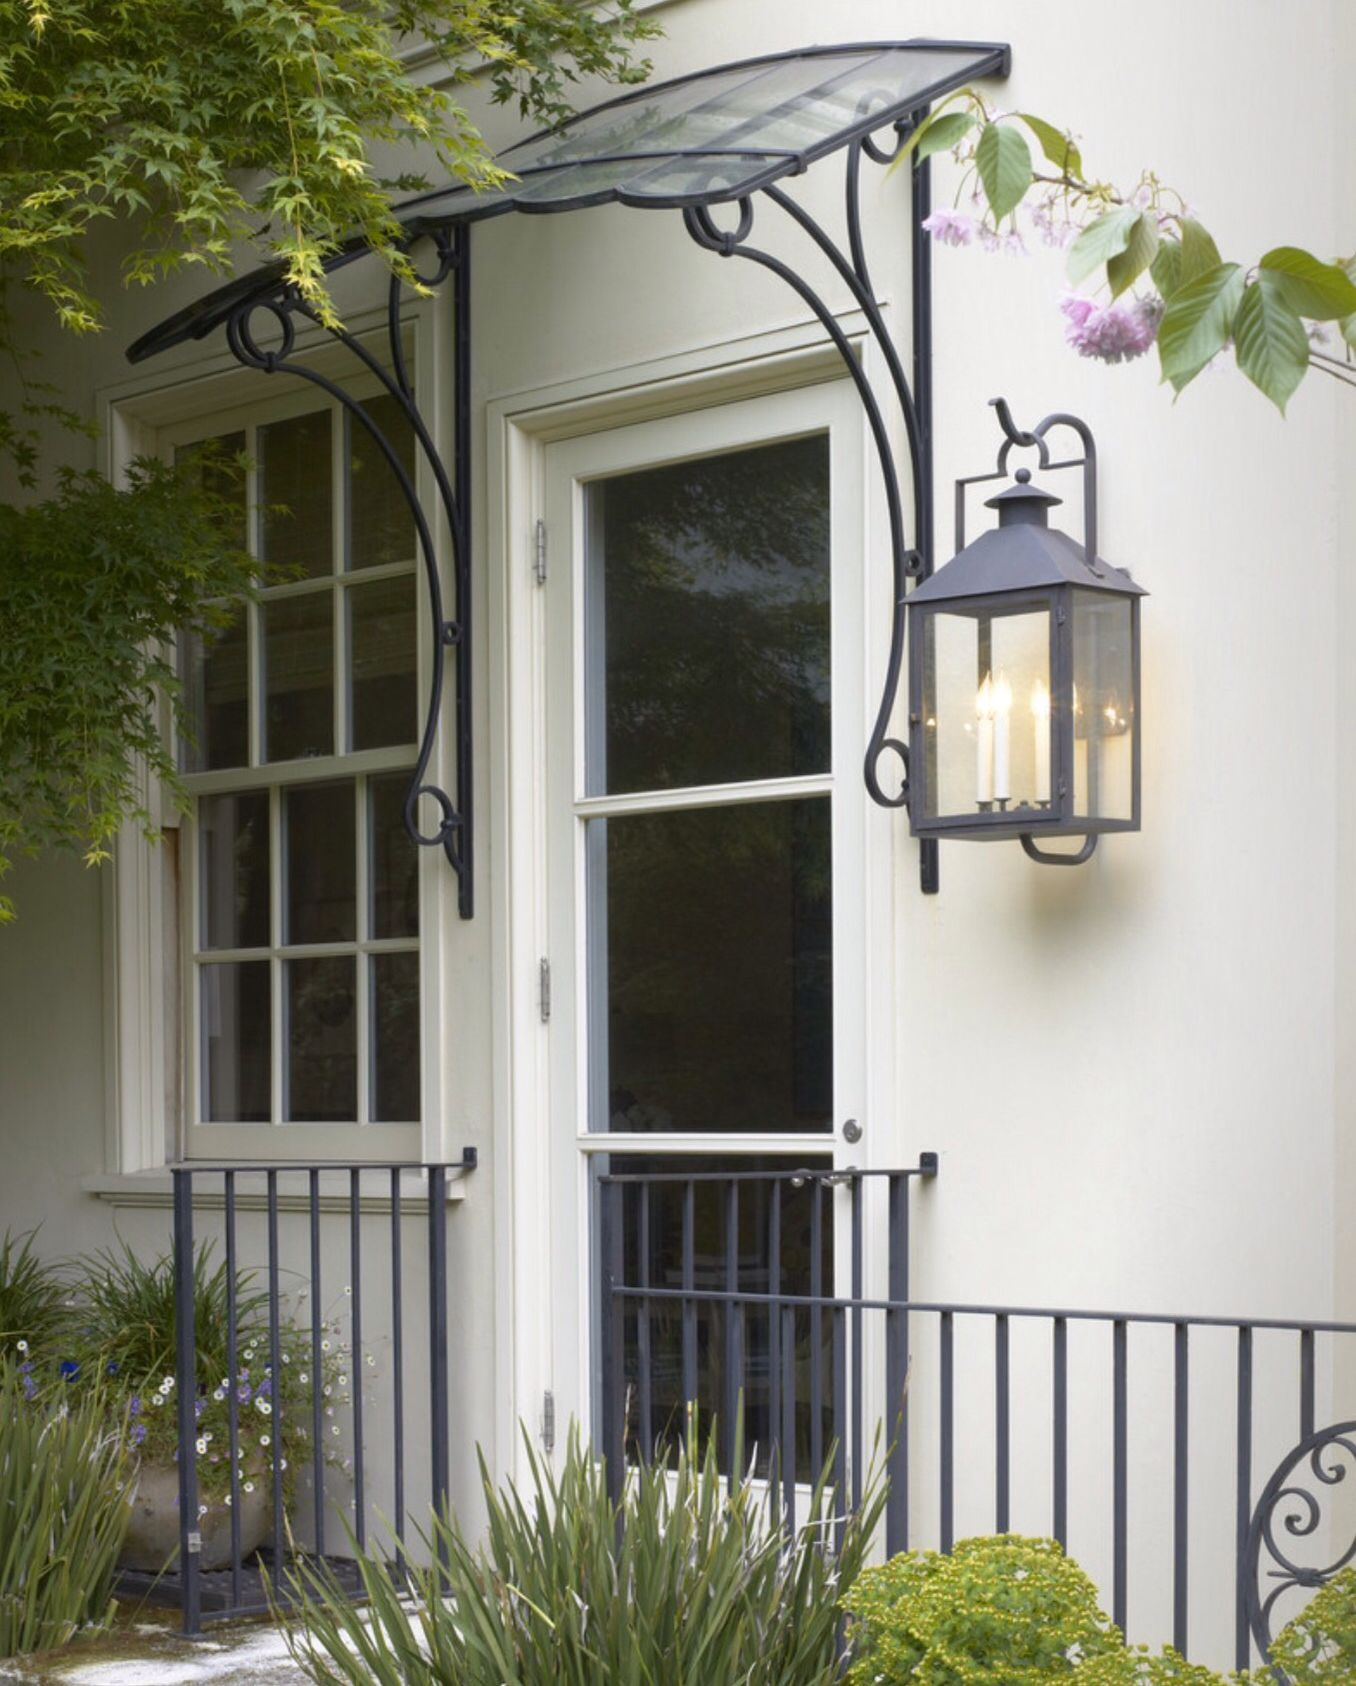 Classic Awning Canopy Design House Canopy House Awnings